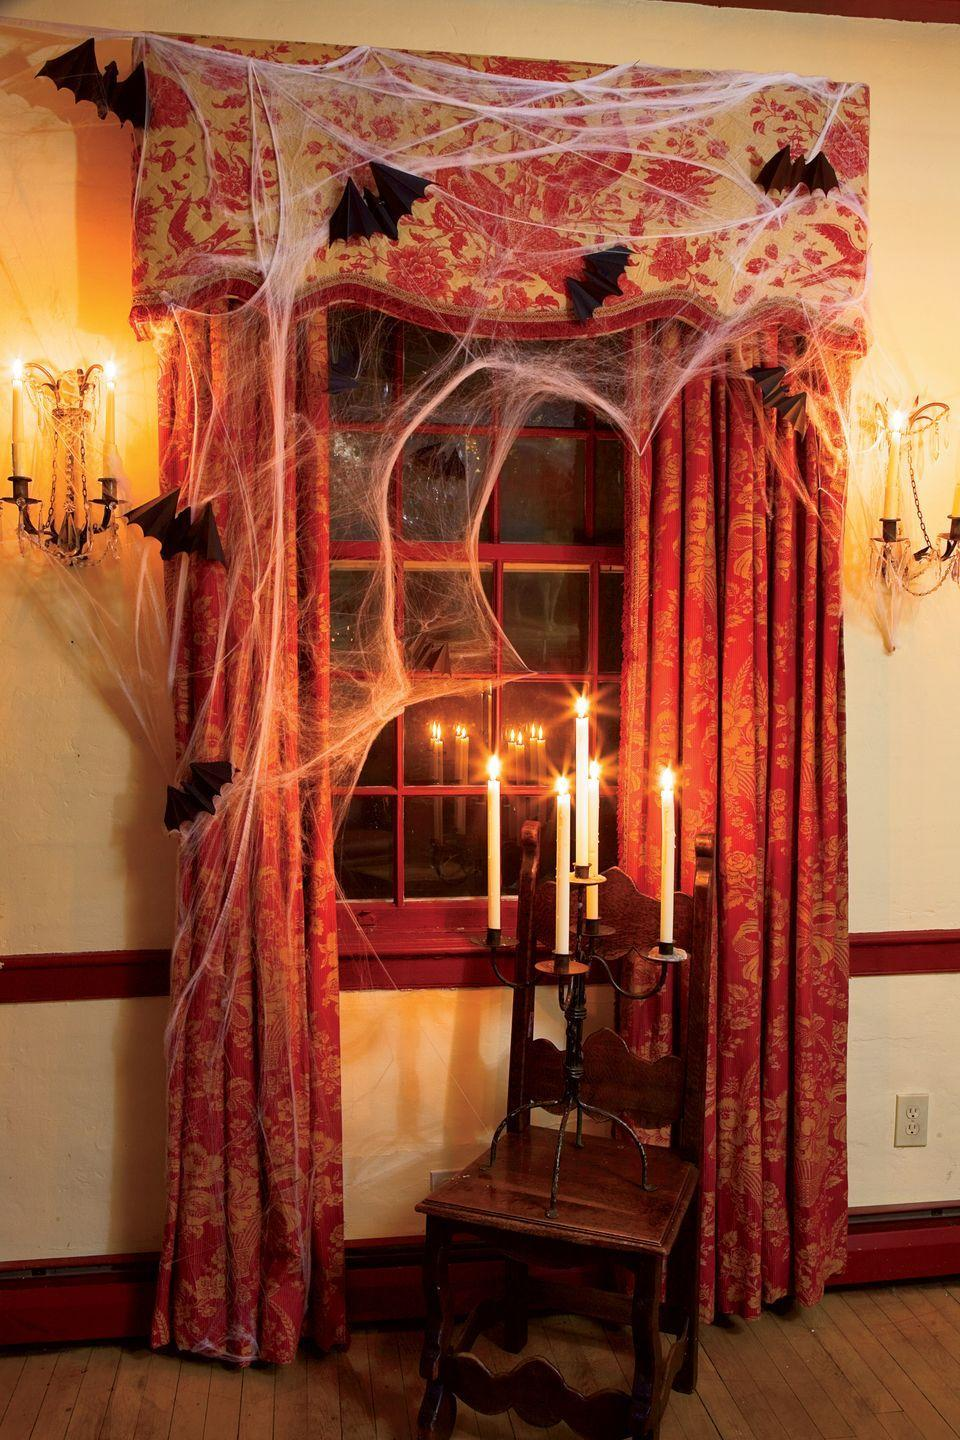 """<p>Use candlelight to create dark shadows in the corners. Here, ghostly white tapers in a flea market <span class=""""redactor-unlink"""">candelabra</span> enhance the creepiness of cobwebs and flying bats. </p>"""